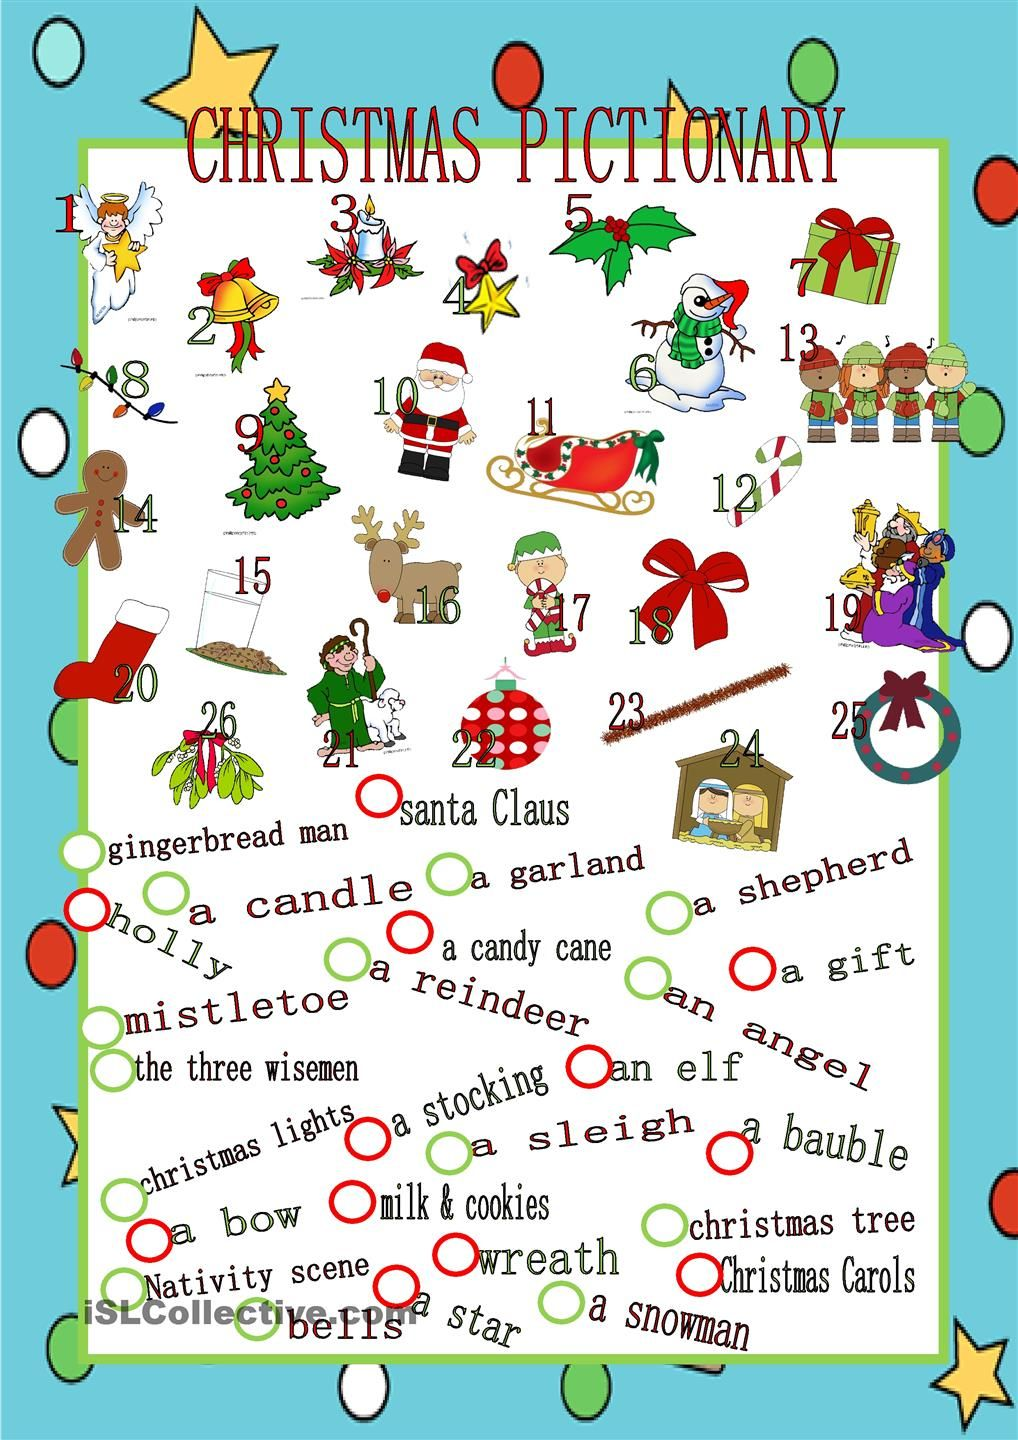 Christmas Decorations Lesson Plans : Christmas pictionary party games food